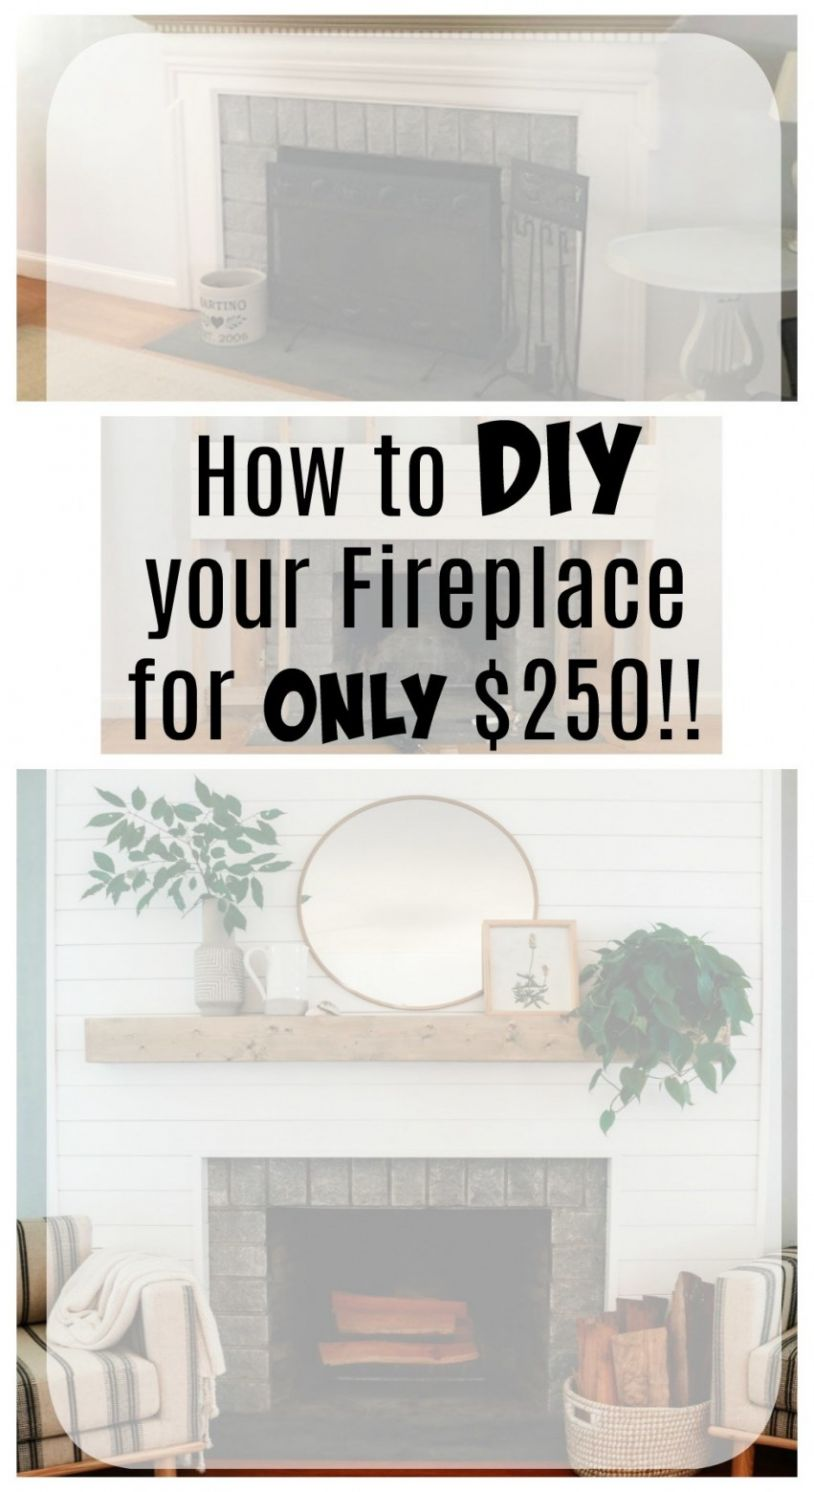 diy fireplace mantel shelf shiplap fireplace and diy mantle ditched the old of diy fireplace mantel shelf 2 814x1492